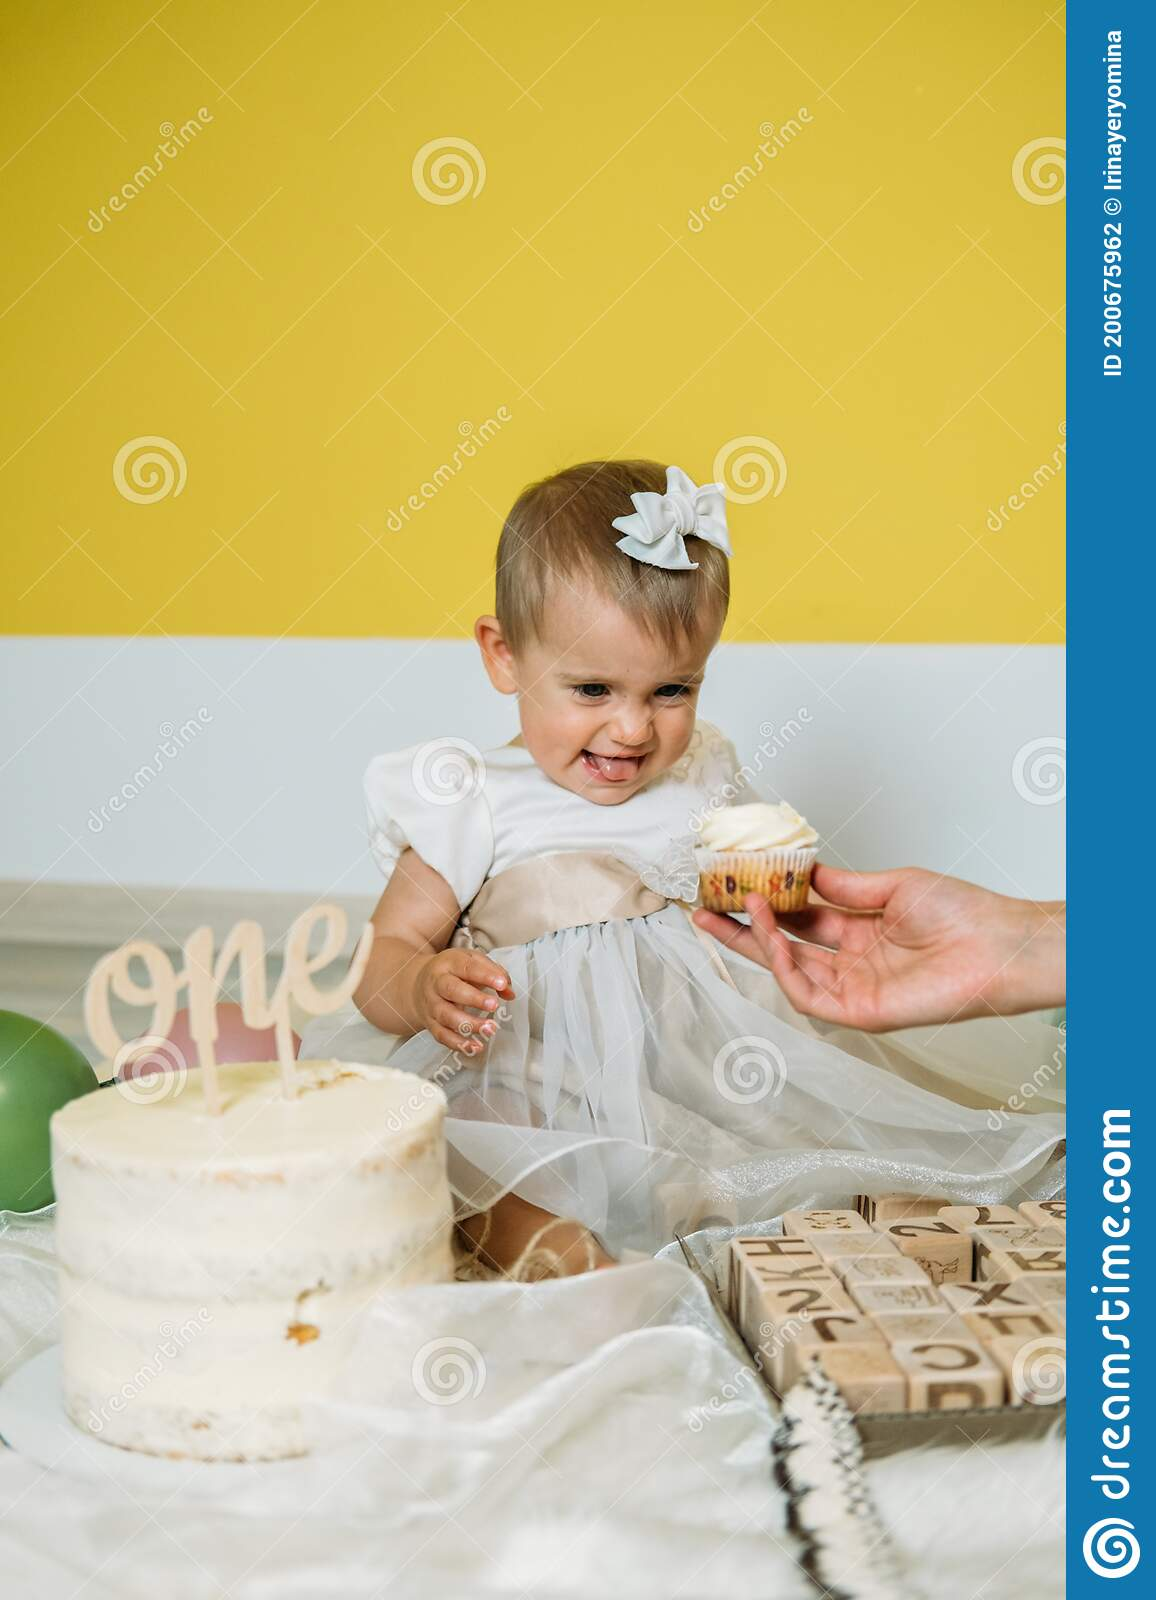 Eco Friendly Baby First Birthday Party With Cake 1st Birthday Ideas With Natural Decoration Sustainable Eco Friendly Stock Photo Image Of Fancy Flowers 200675962